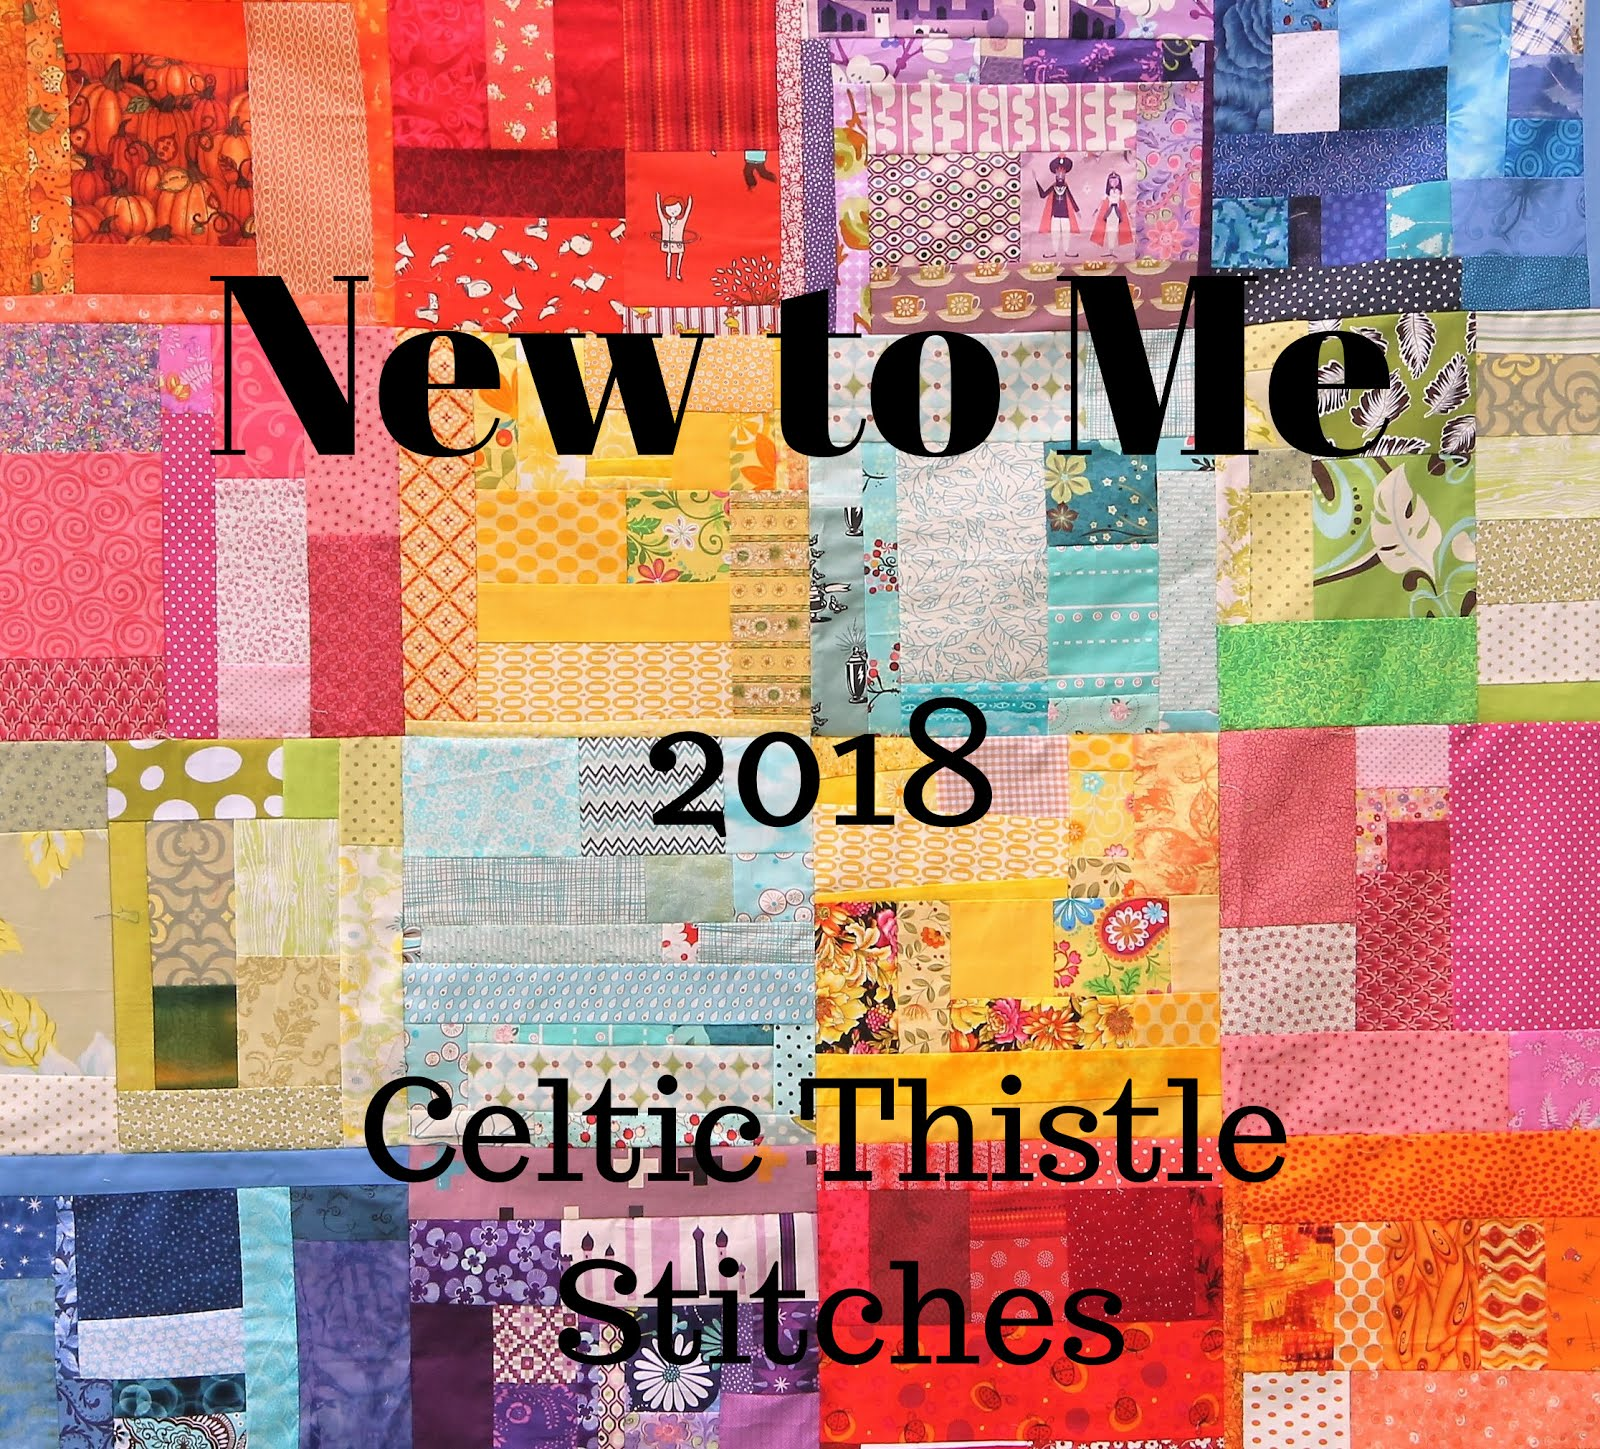 http://celticthistlestitches.blogspot.com/2018/07/painted-cloth.html